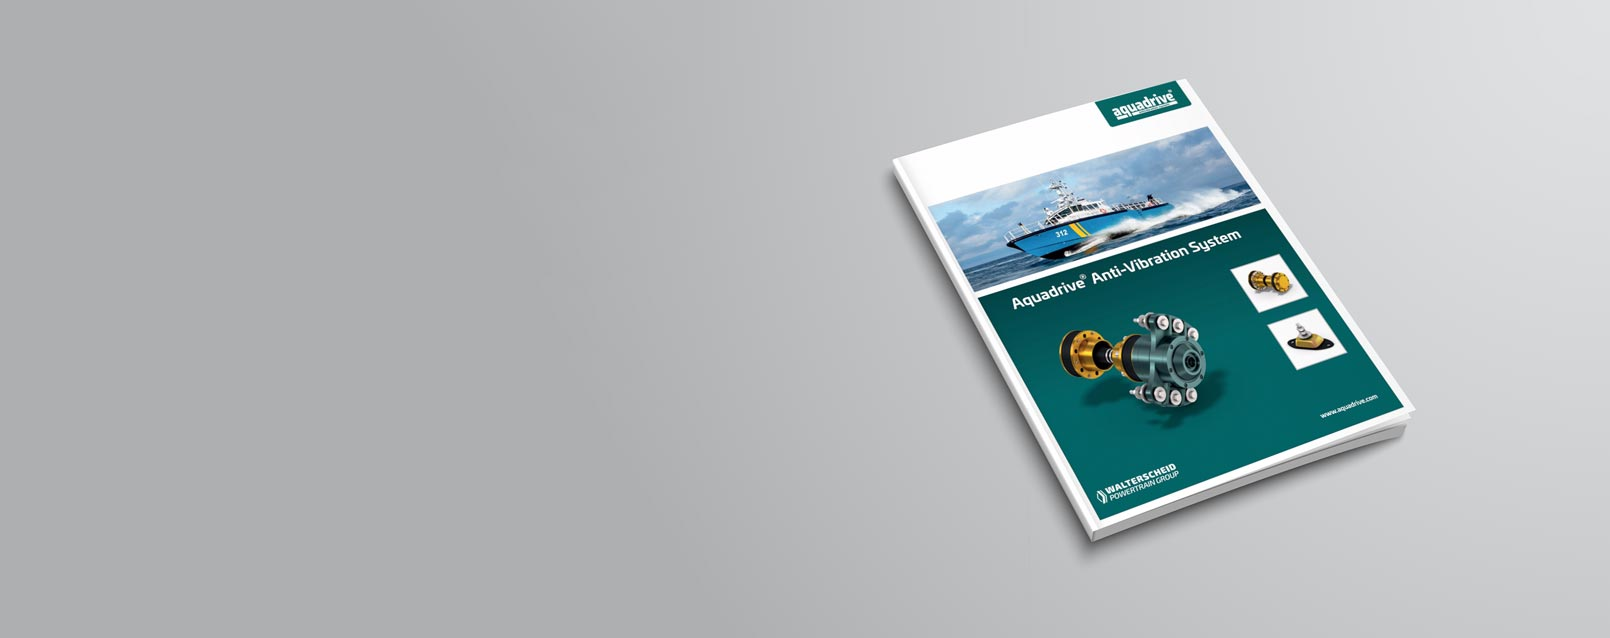 Walterscheid Powertrain Group - Aquadrive Catalogue